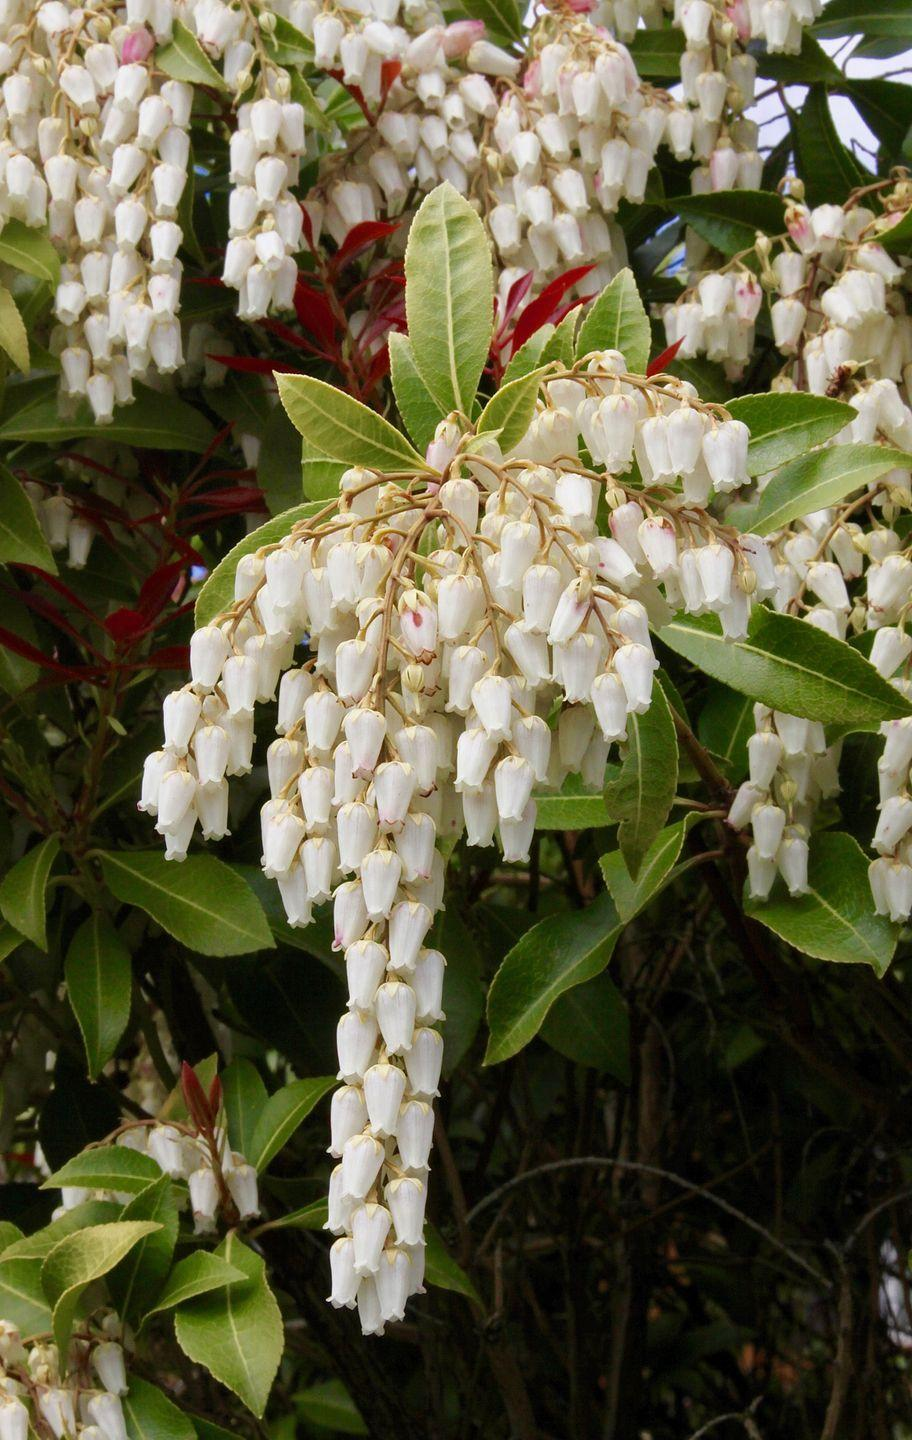 """<p>Need some early season color? Like its namesake, these shrubs have showy clusters of bell-shaped flowers that dangle from the arching branches in late winter to early spring. Lily of the valley needs mostly shade. </p><p><a class=""""link rapid-noclick-resp"""" href=""""https://go.redirectingat.com?id=74968X1596630&url=https%3A%2F%2Fwww.homedepot.com%2Fp%2FSouthern-Living-Plant-Collection-2-Gal-Mountain-Snow-Pieris-Evergreen-Shrub-Clusters-of-Small-Bell-shaped-White-Blooms-46962%2F205065043%3Fsource%3Dshoppingads%26locale%3Den-US%26mtc%3DShopping-B-F_D28O-G-D28O-28_8_LIVE_GOODS-Multi-NA-Feed-SMART-NA-NA-Shrub_Landscape%26cm_mmc%3DShopping-B-F_D28O-G-D28O-28_8_LIVE_GOODS-Multi-NA-Feed-SMART-NA-NA-Shrub_Landscape-71700000064169154-58700005694172116-92700051912266622%26gclid%3DCjwKCAiA9vOABhBfEiwATCi7GLG62ZrkbHVOqFScJNhOurBKt2-khROx6WzZdDVsCirSsk5C5tvqSxoC3VEQAvD_BwE%26gclsrc%3Daw.ds&sref=https%3A%2F%2Fwww.redbookmag.com%2Fhome%2Fg35507259%2Fbest-white-flowers%2F"""" rel=""""nofollow noopener"""" target=""""_blank"""" data-ylk=""""slk:SHOP LILY OF THE VALLEY SHRUBS"""">SHOP LILY OF THE VALLEY SHRUBS</a></p>"""